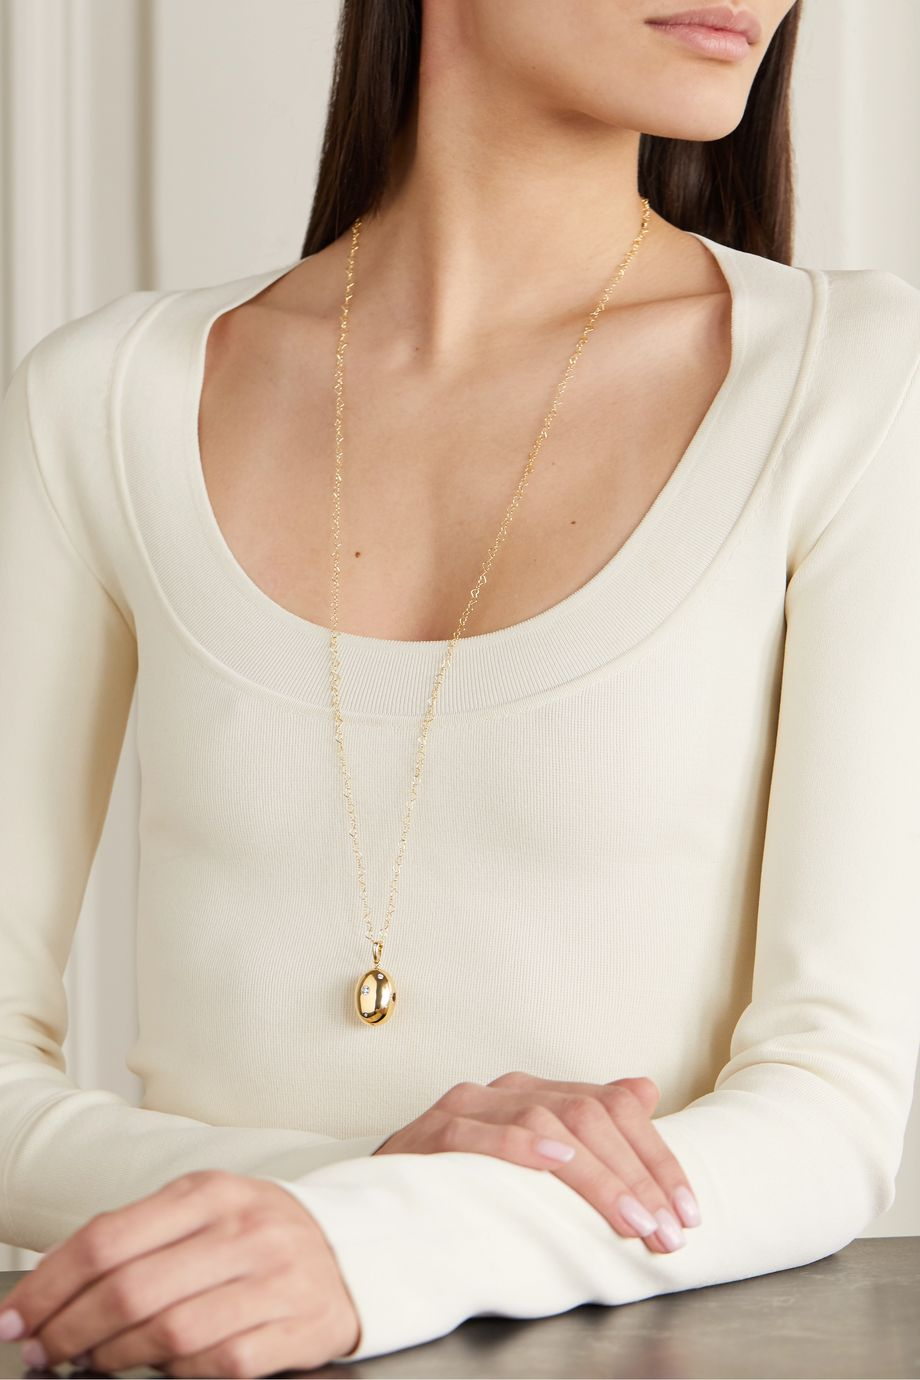 Loquet + Chantal Conrad Lumiere 14-karat gold diamond necklace